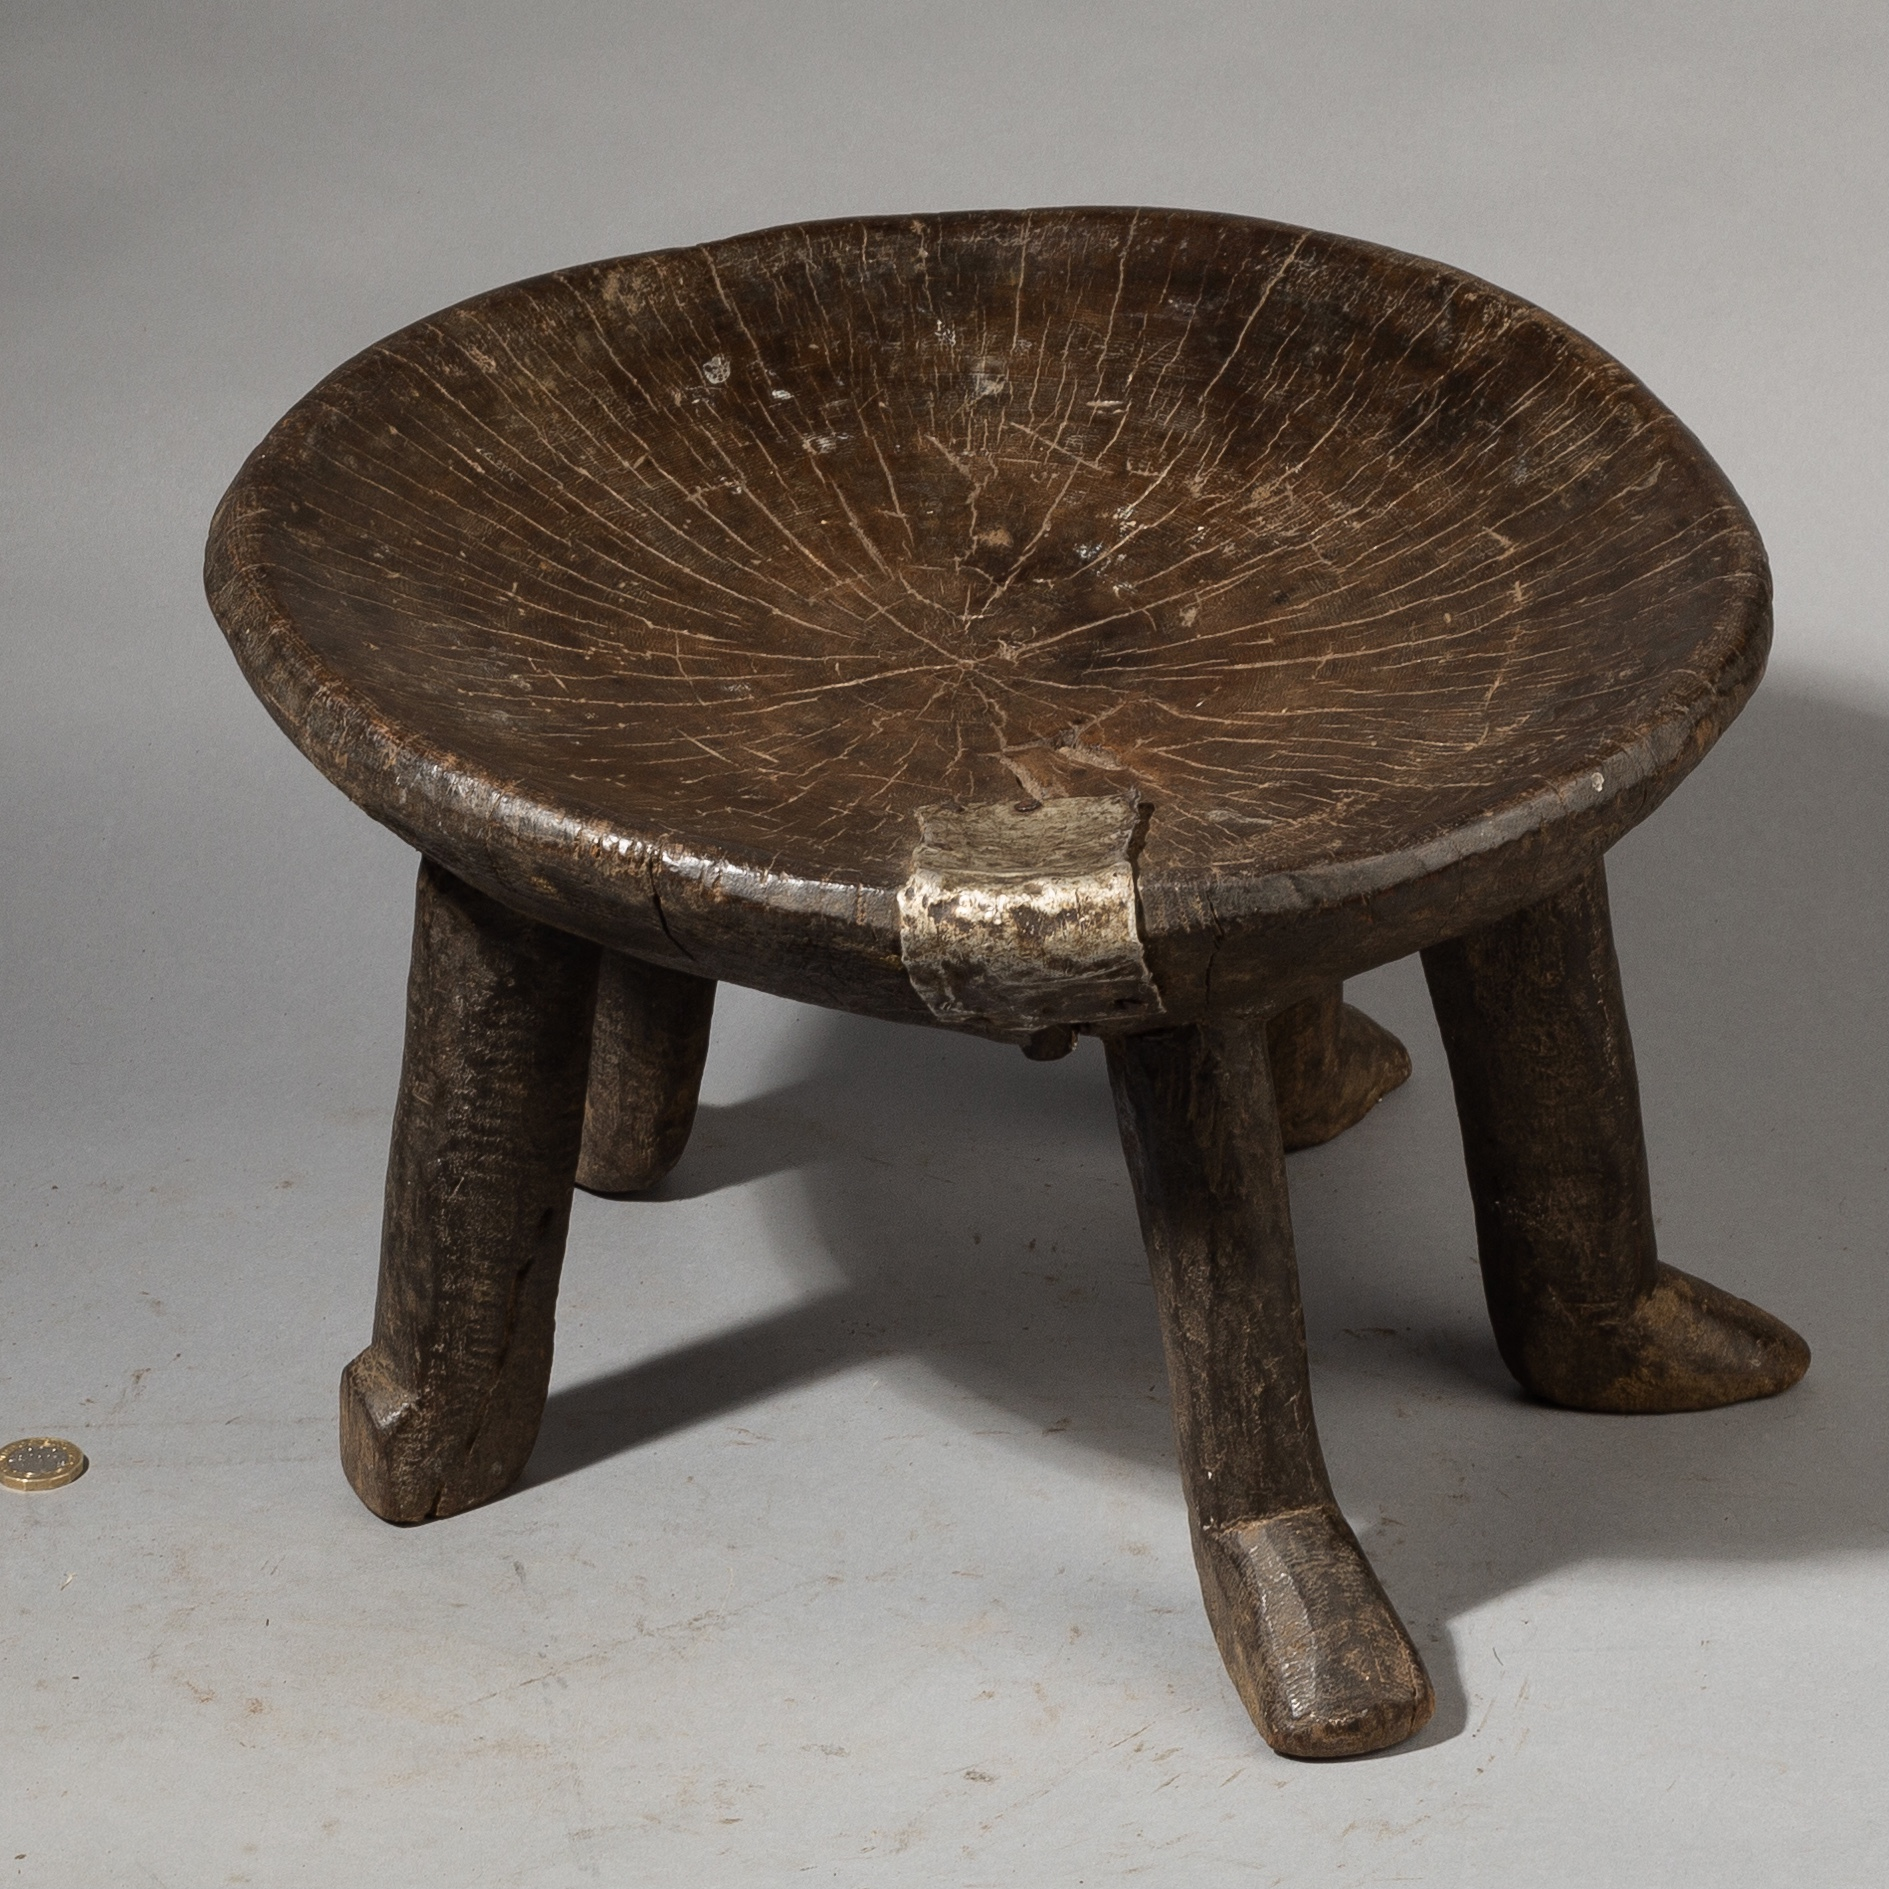 AN UNEXPECTED 5 LEGGED STOOL FROM THE HE HE TRIBE TANZANIA ( No 3657)